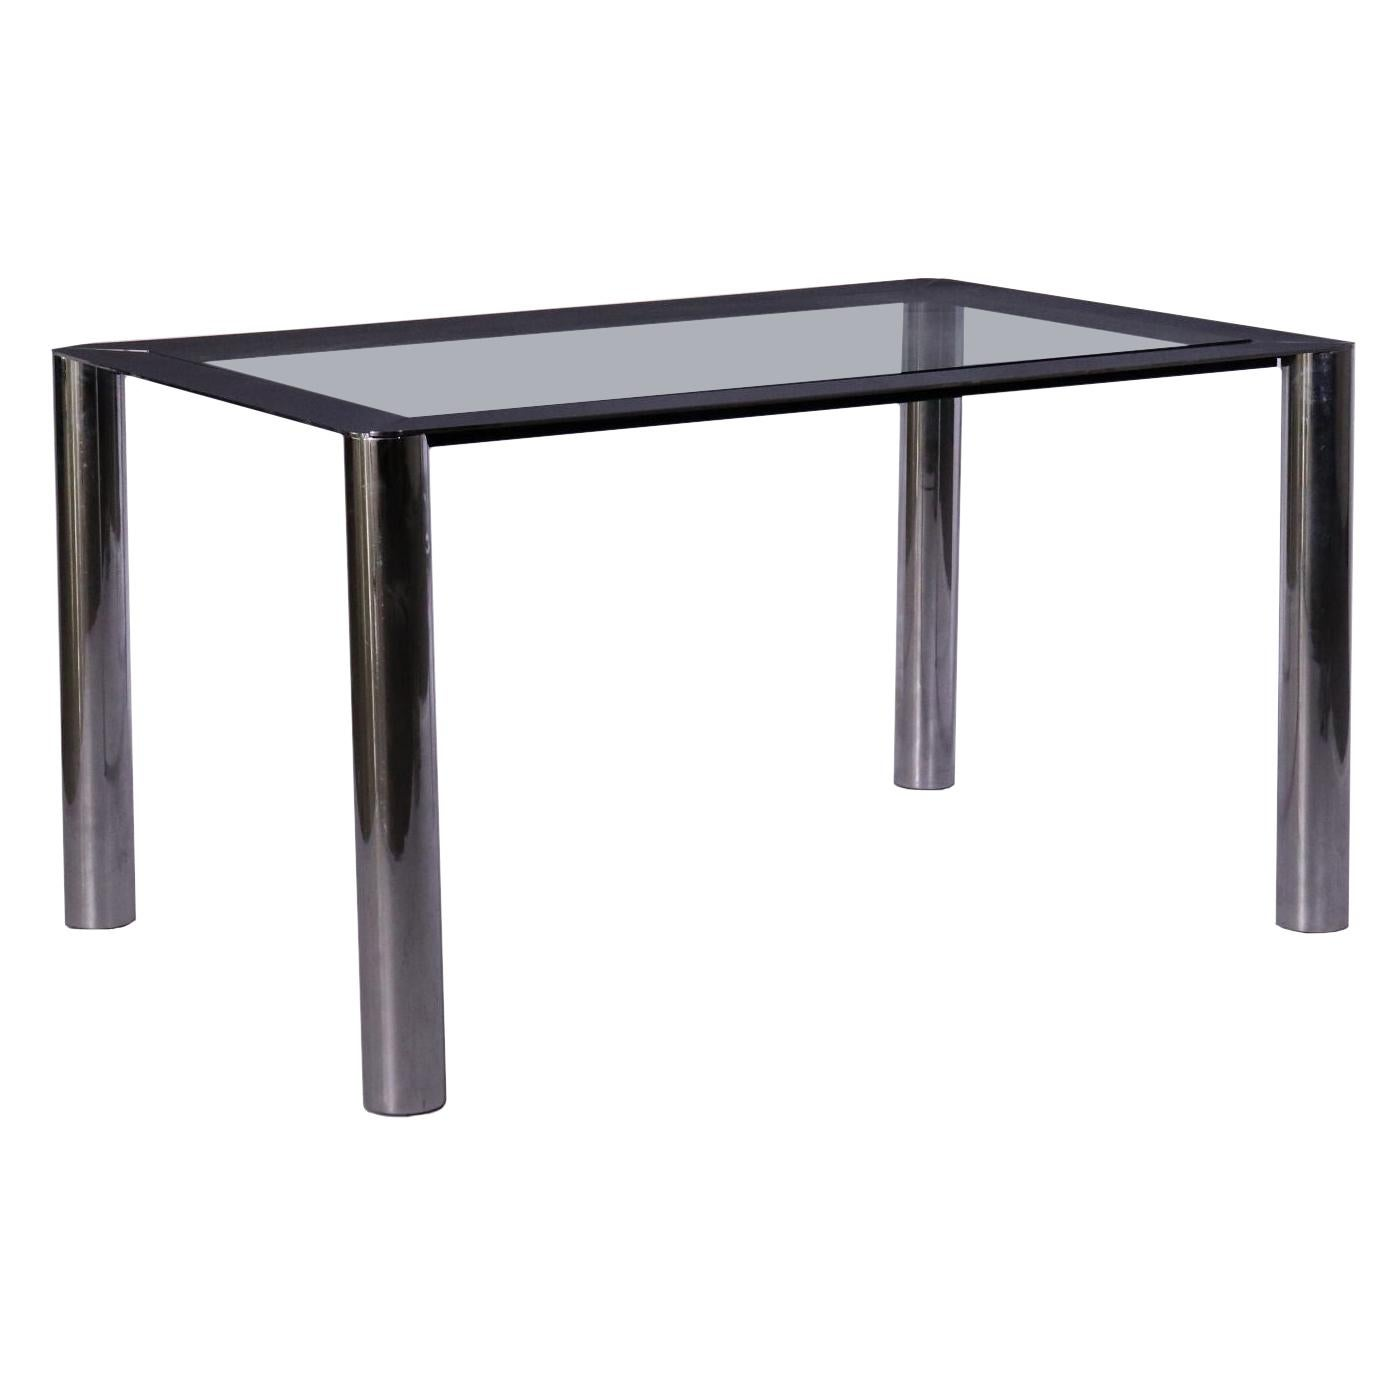 Table Designed for Cinova Metal Glass Vintage, Italy, 1970s